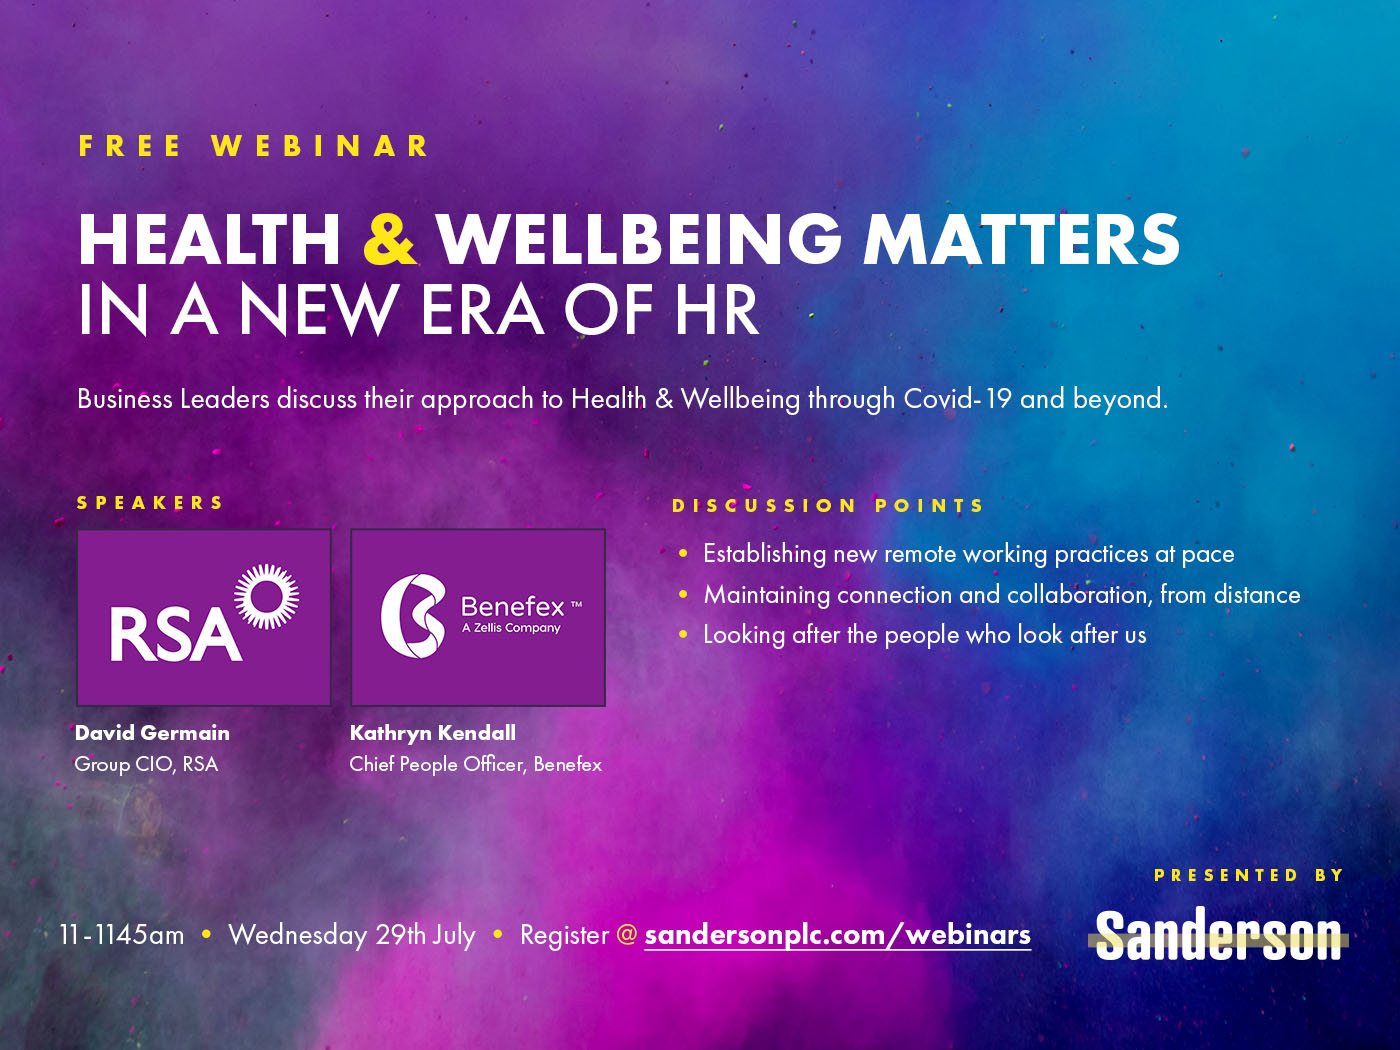 Health & Wellbeing Matters in a New Era of HR